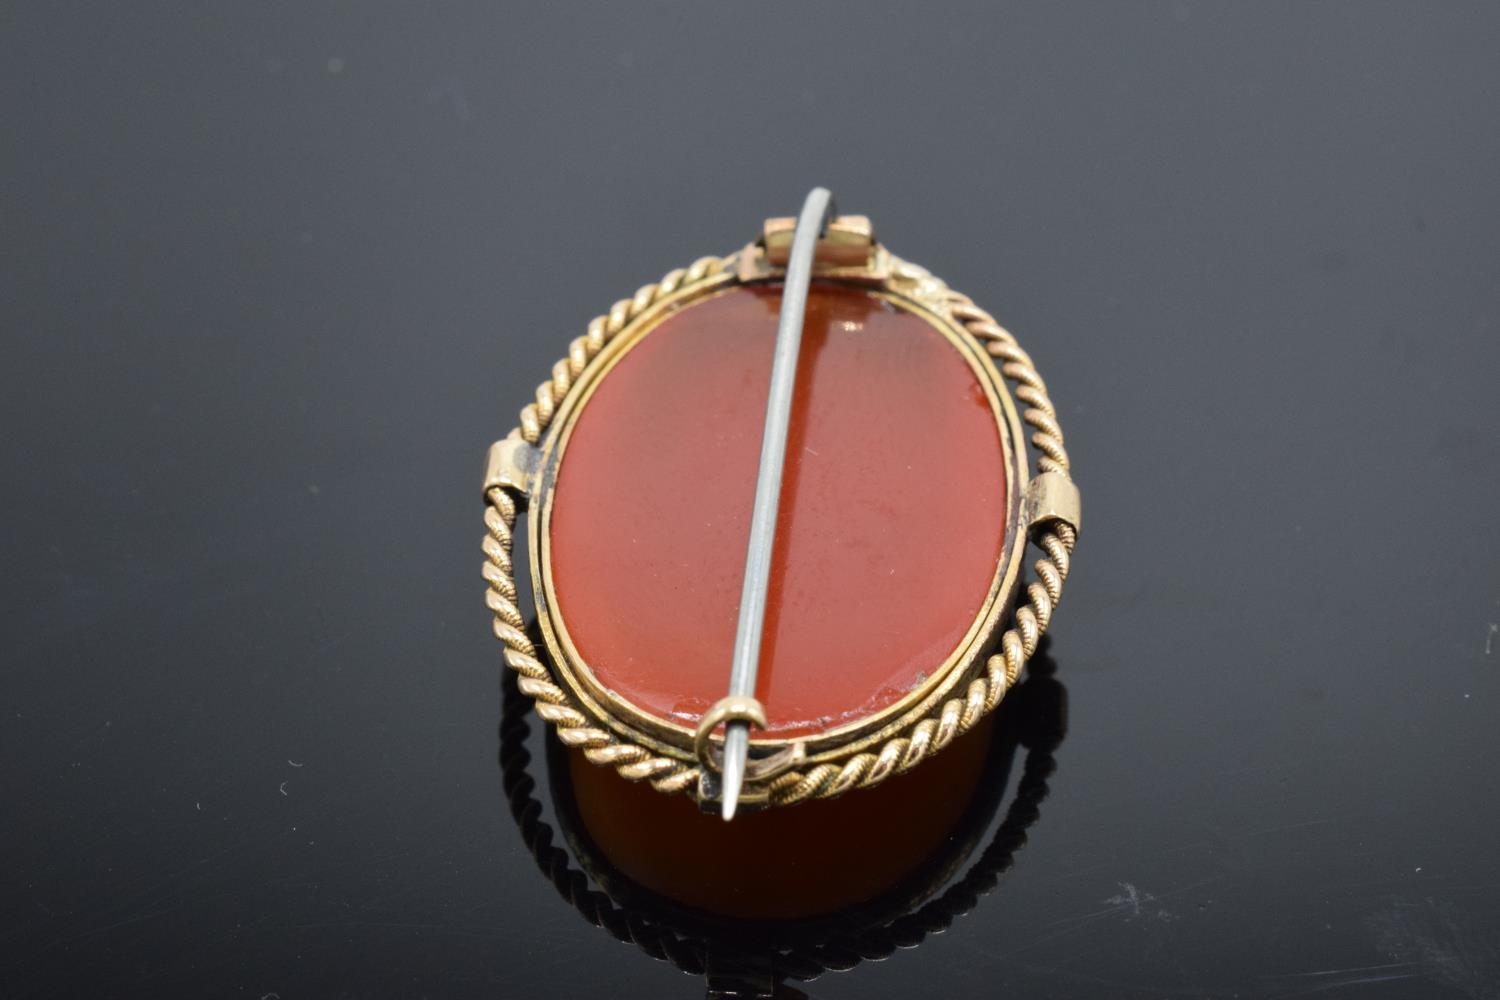 A collection of items to include a 15ct Victorian carnelian brooch (tested as 15ct) (gross weight - Image 5 of 6